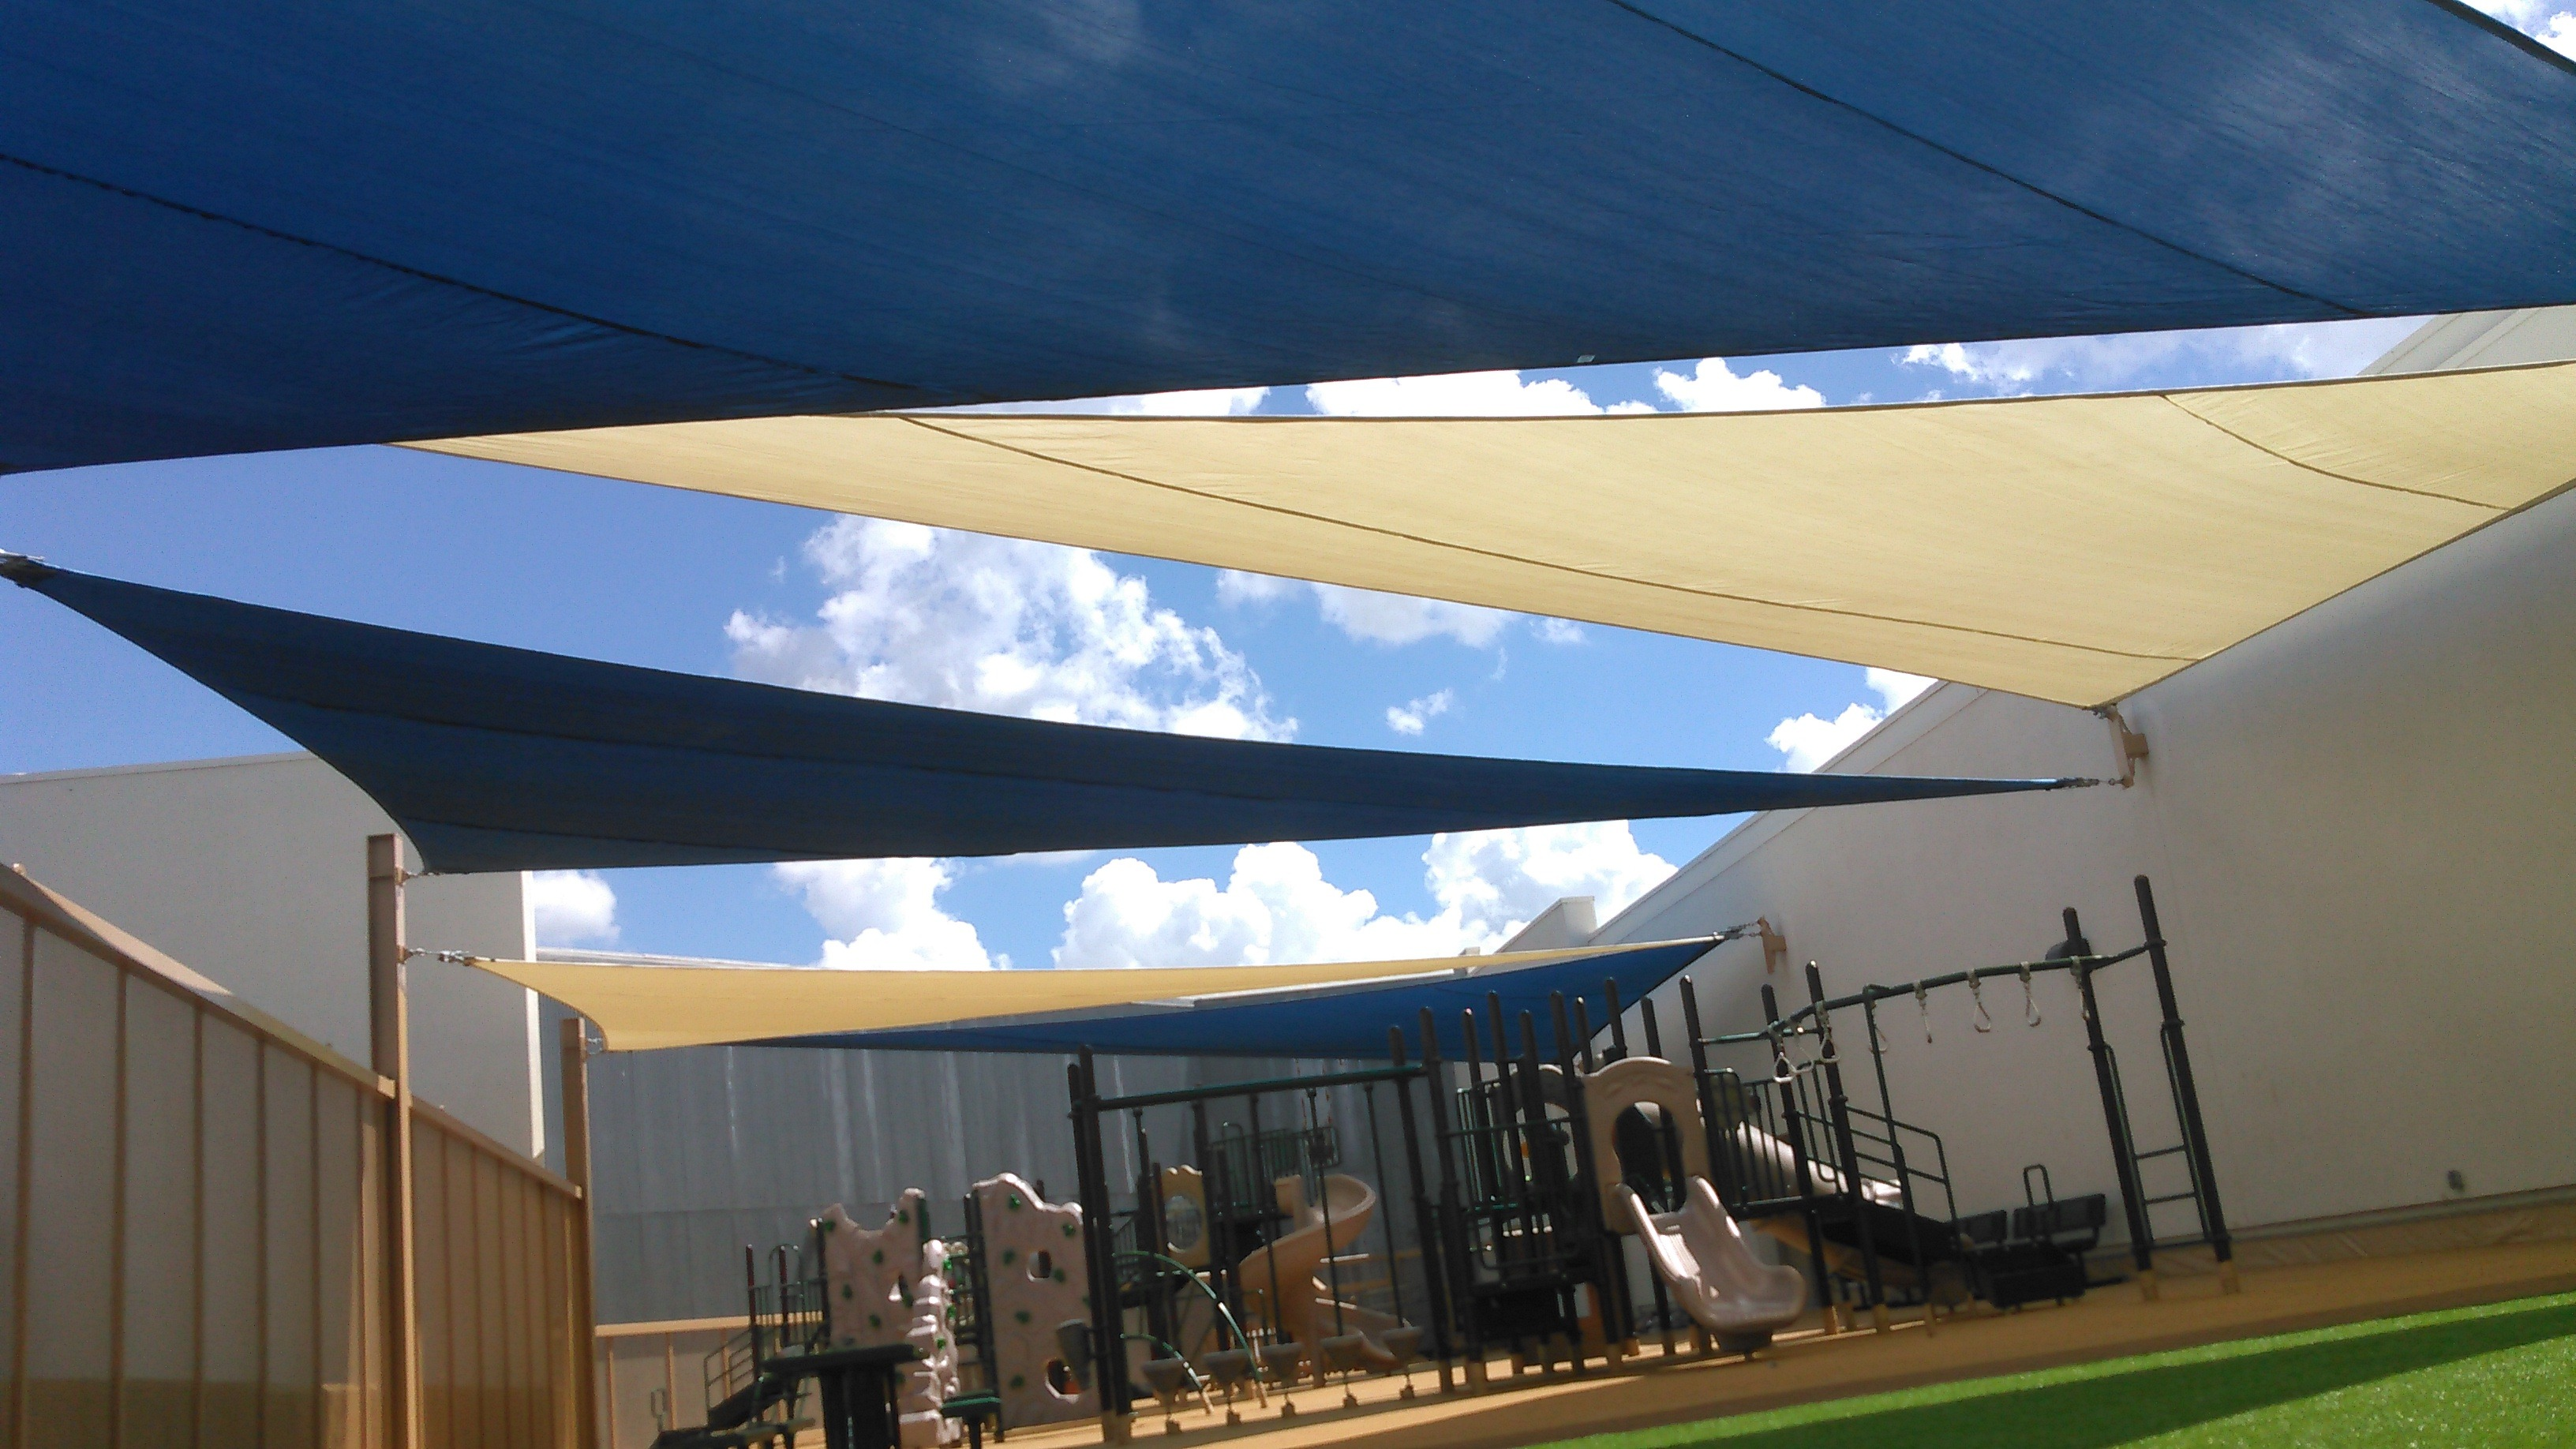 Rooftop Sail Shades Over Rooftop Playground Pro